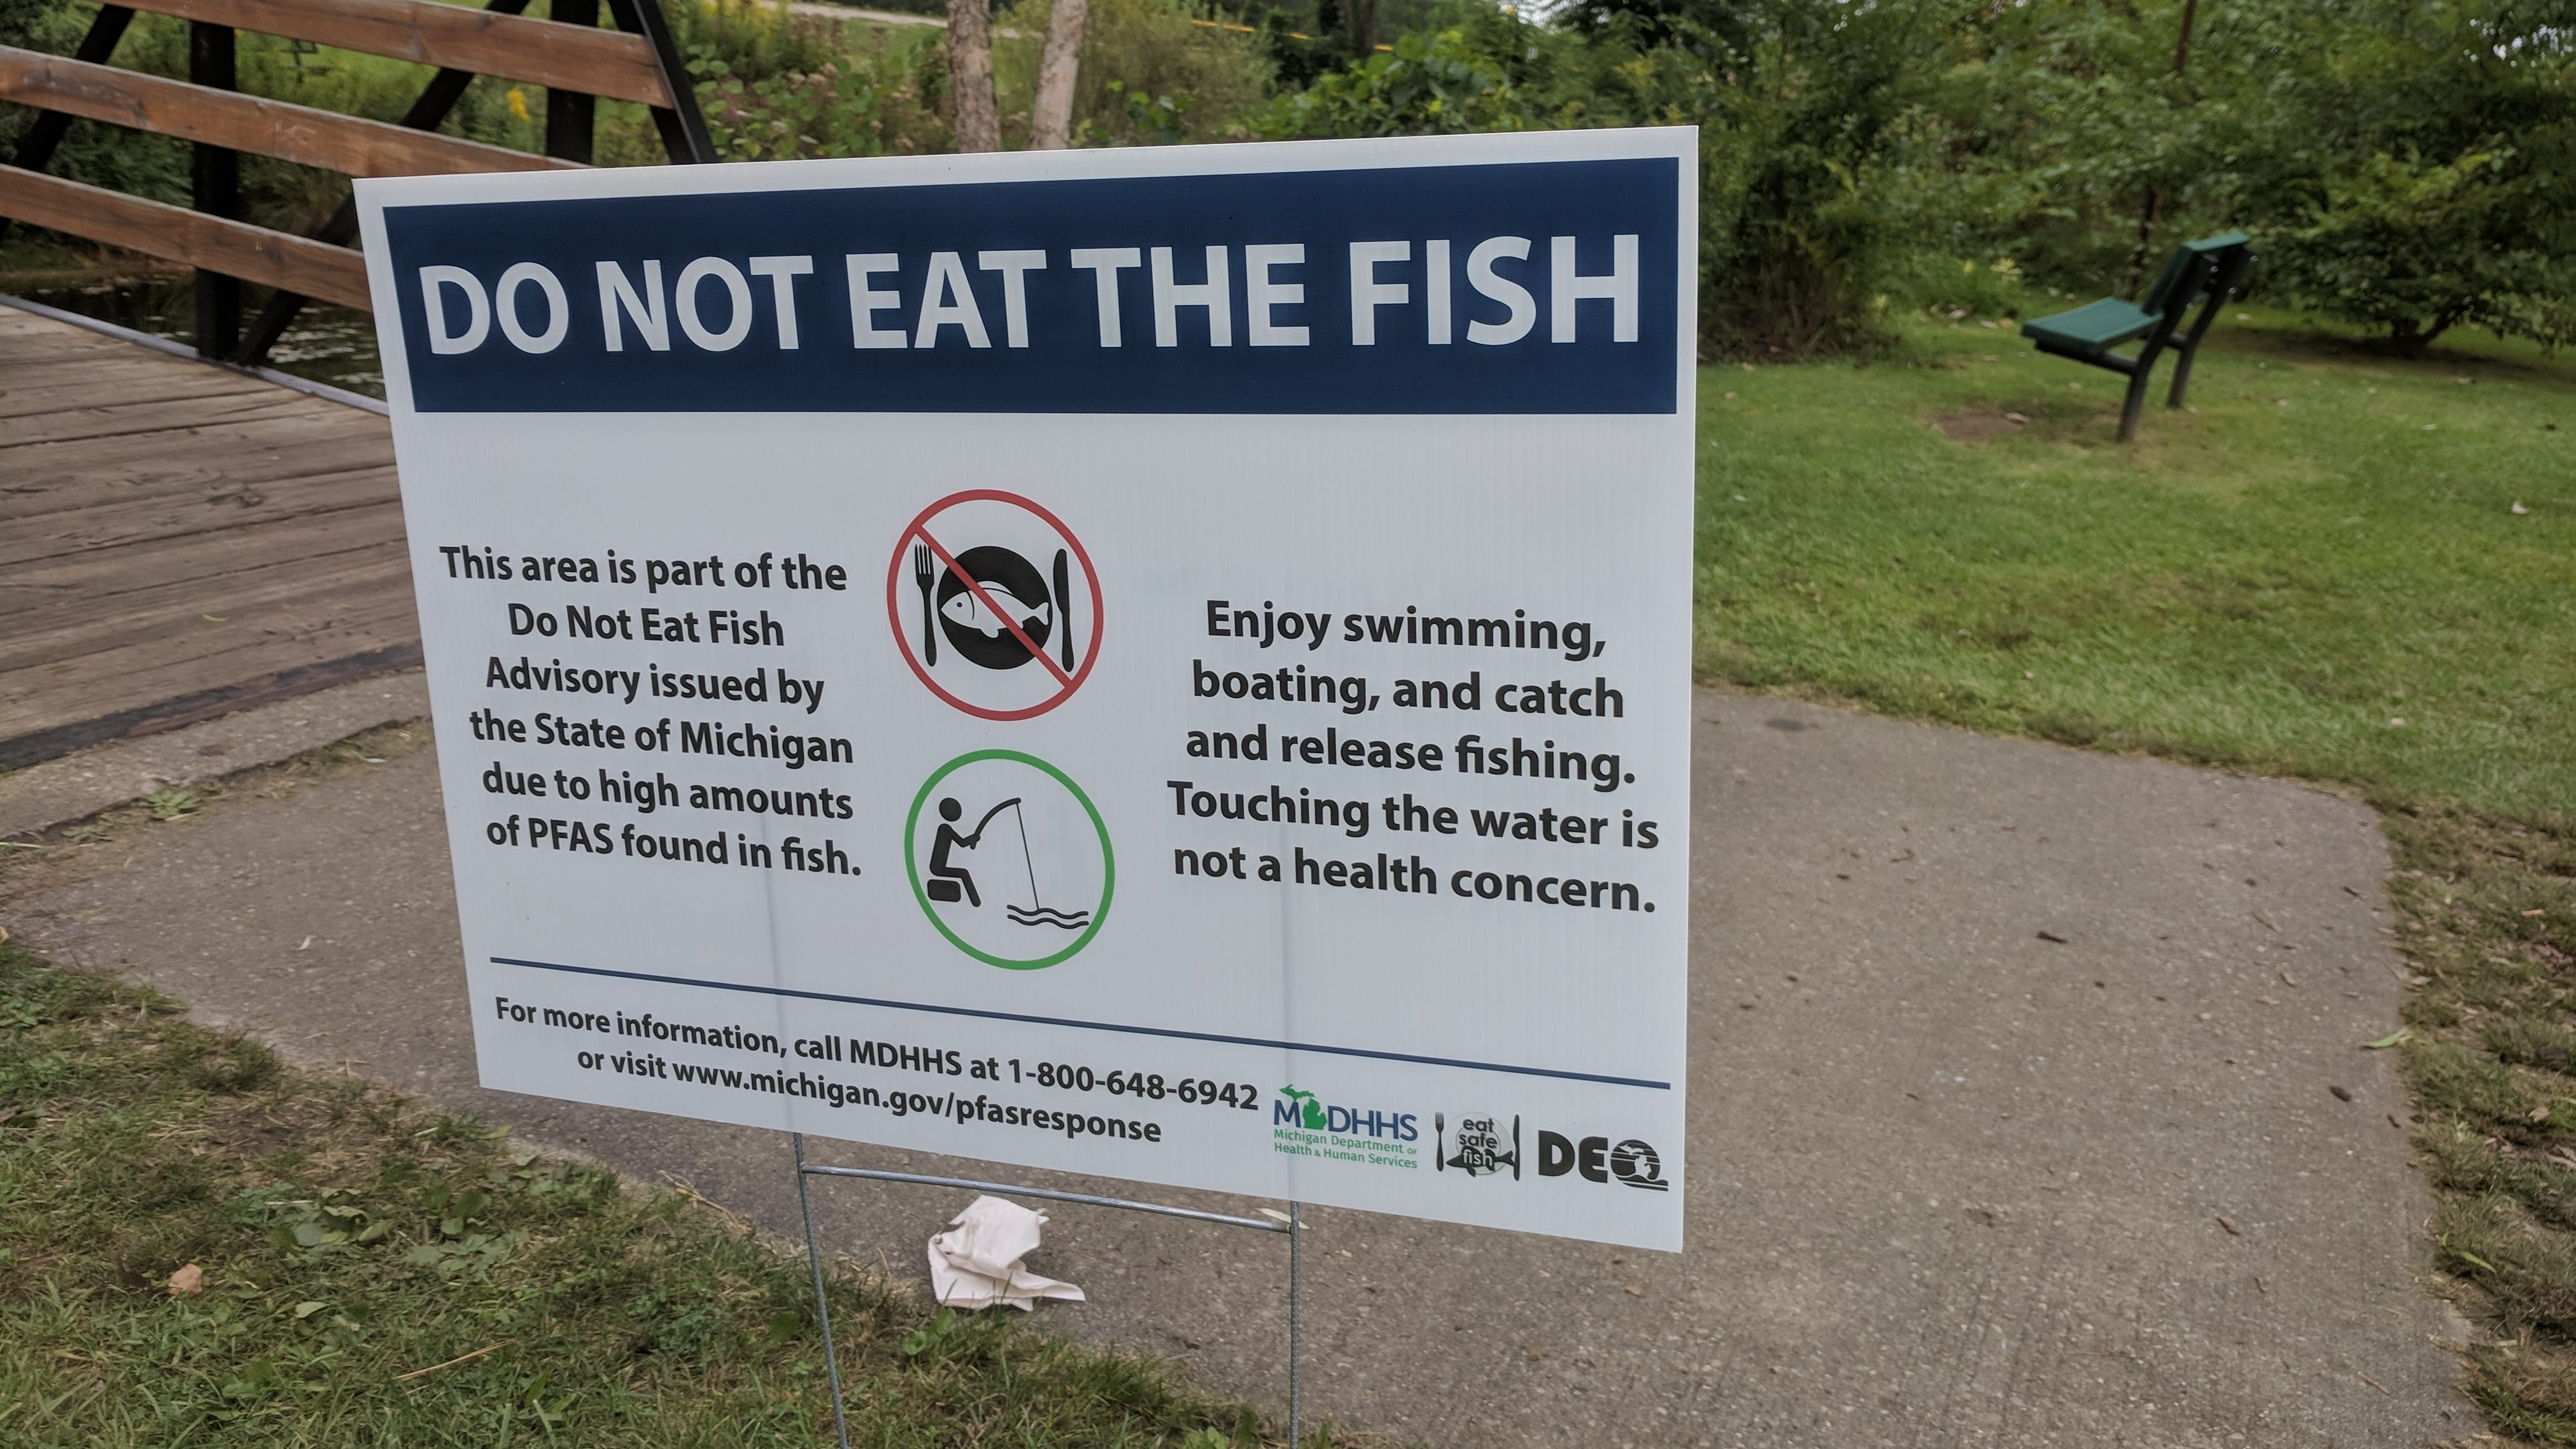 A sign at Milford's Central Park advises anglers not to eat fish caught from Hubbell Pond or the Huron River, due to potentially harmful PFAS contamination, in this Sept. 8, 2018 photo.